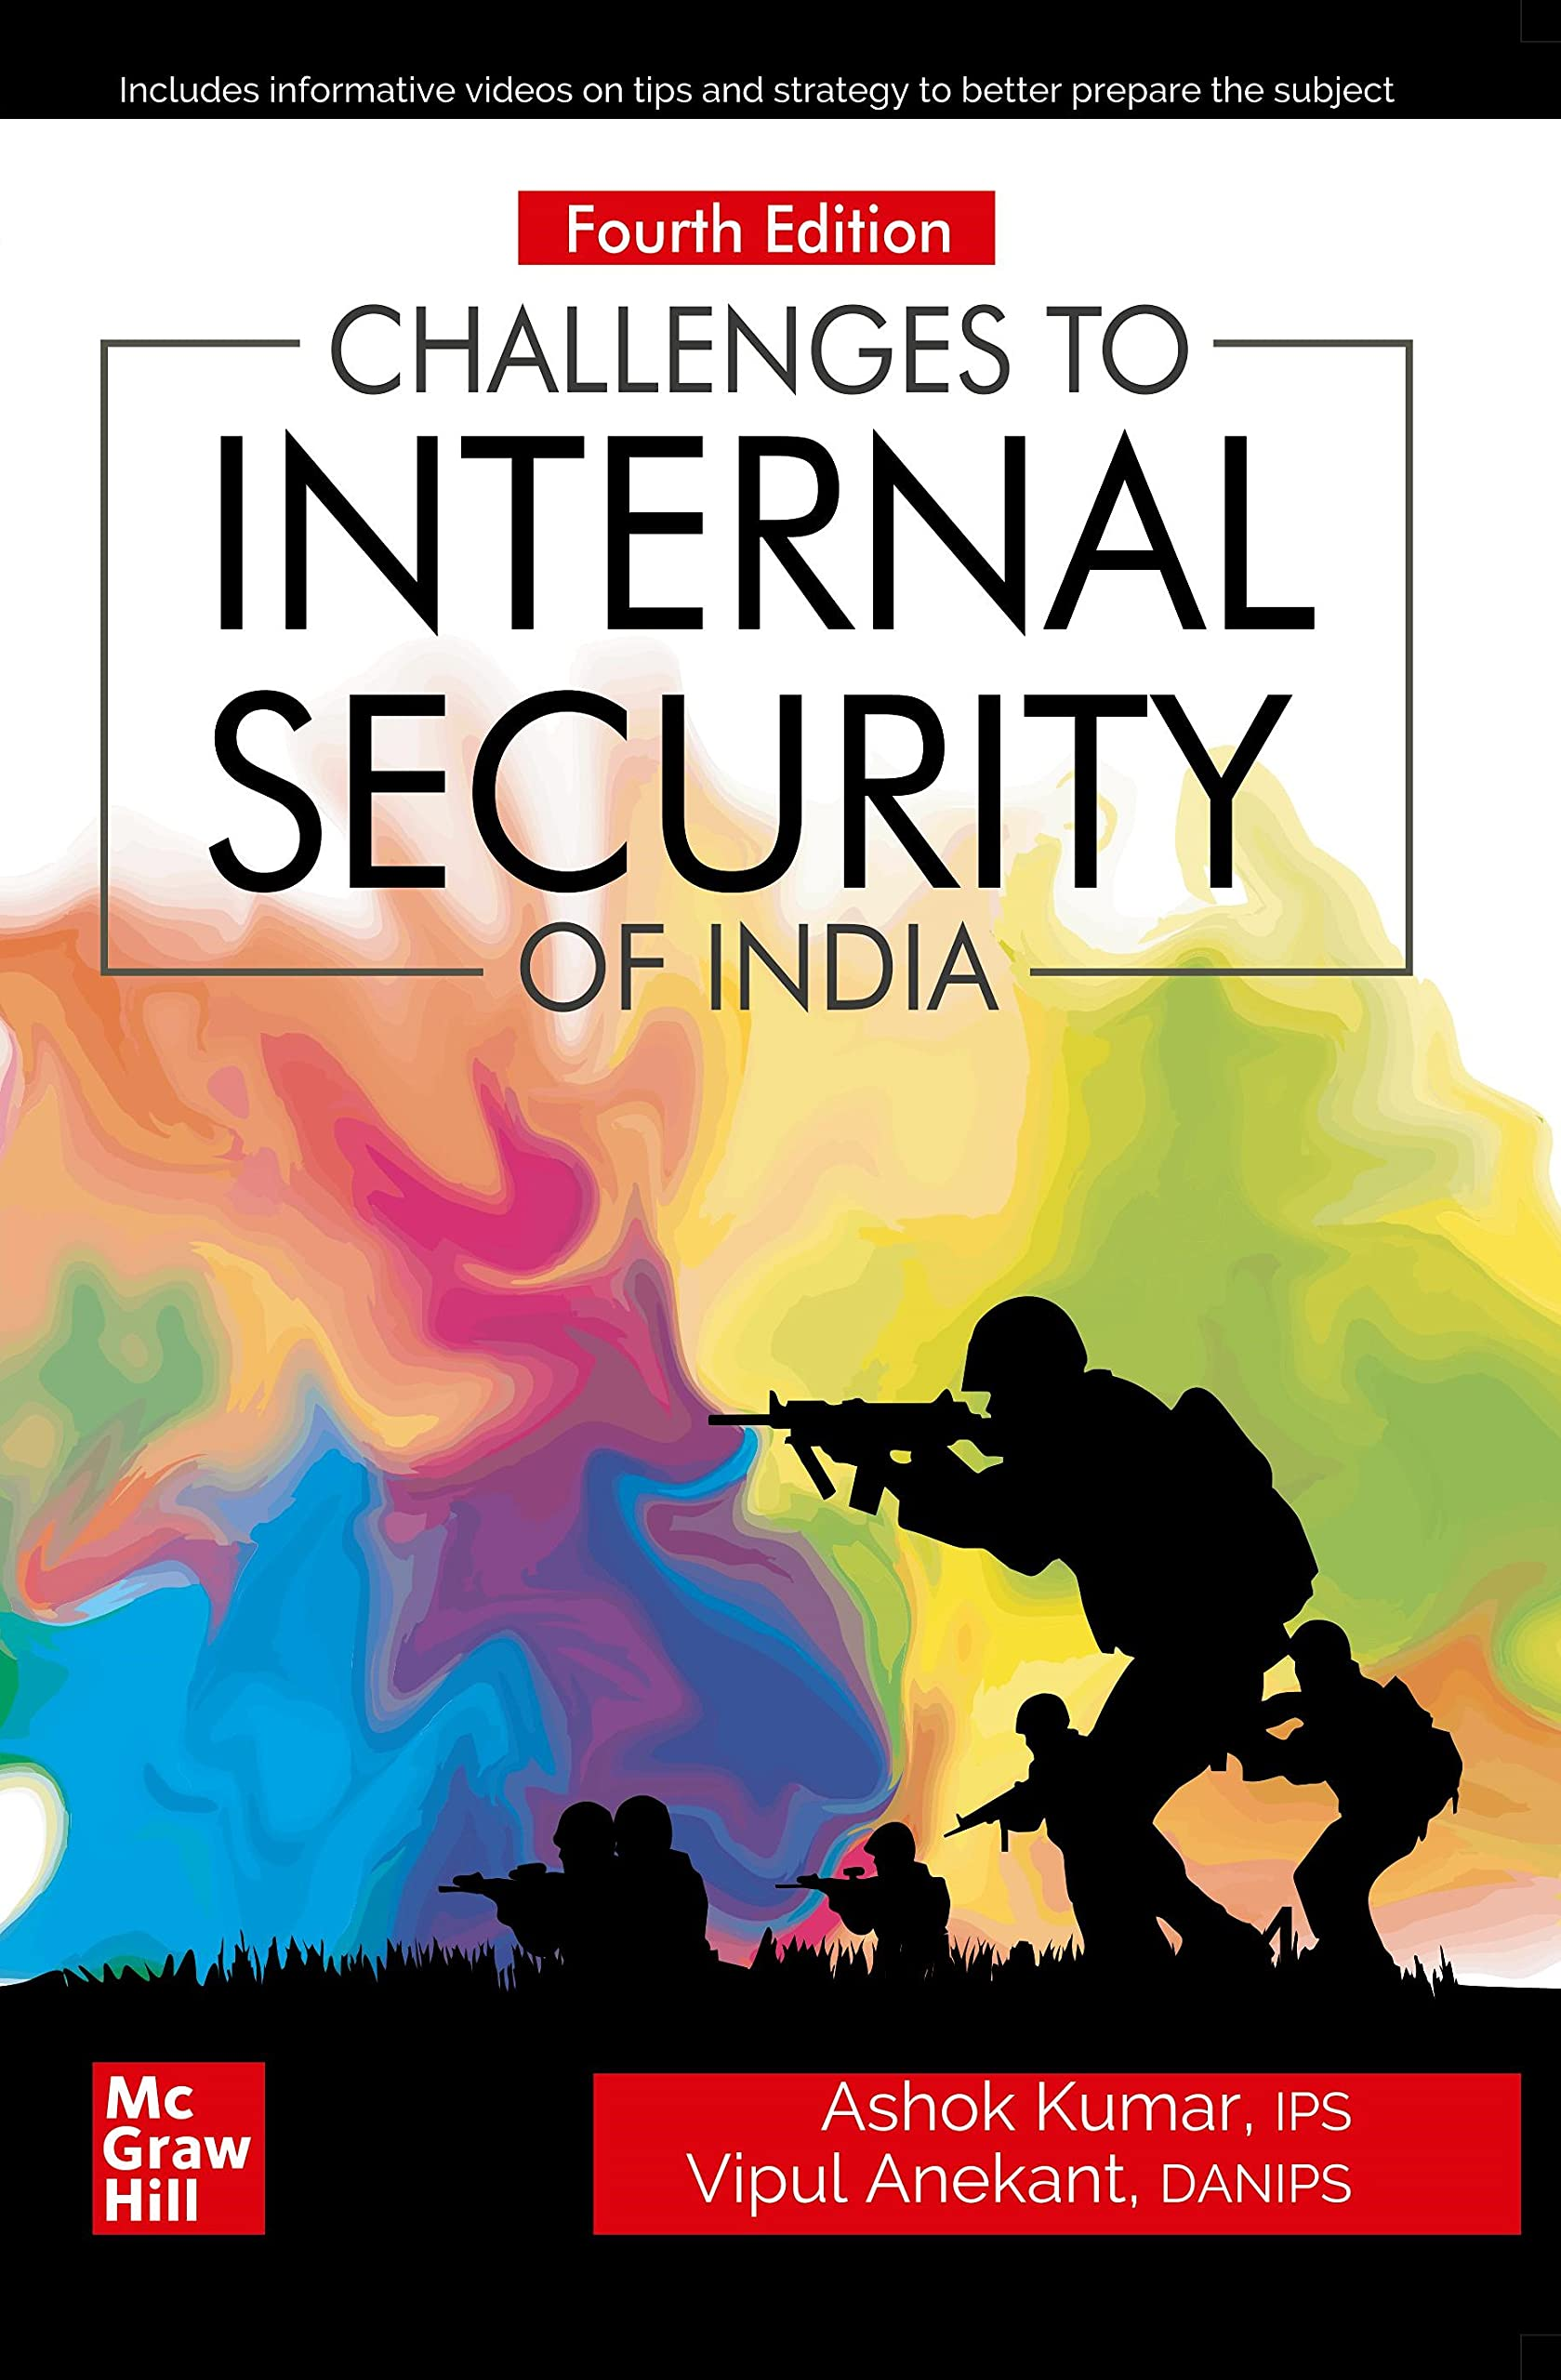 Challenges to Internal Security of India (4th Edition) Paperback – 9 July 2021